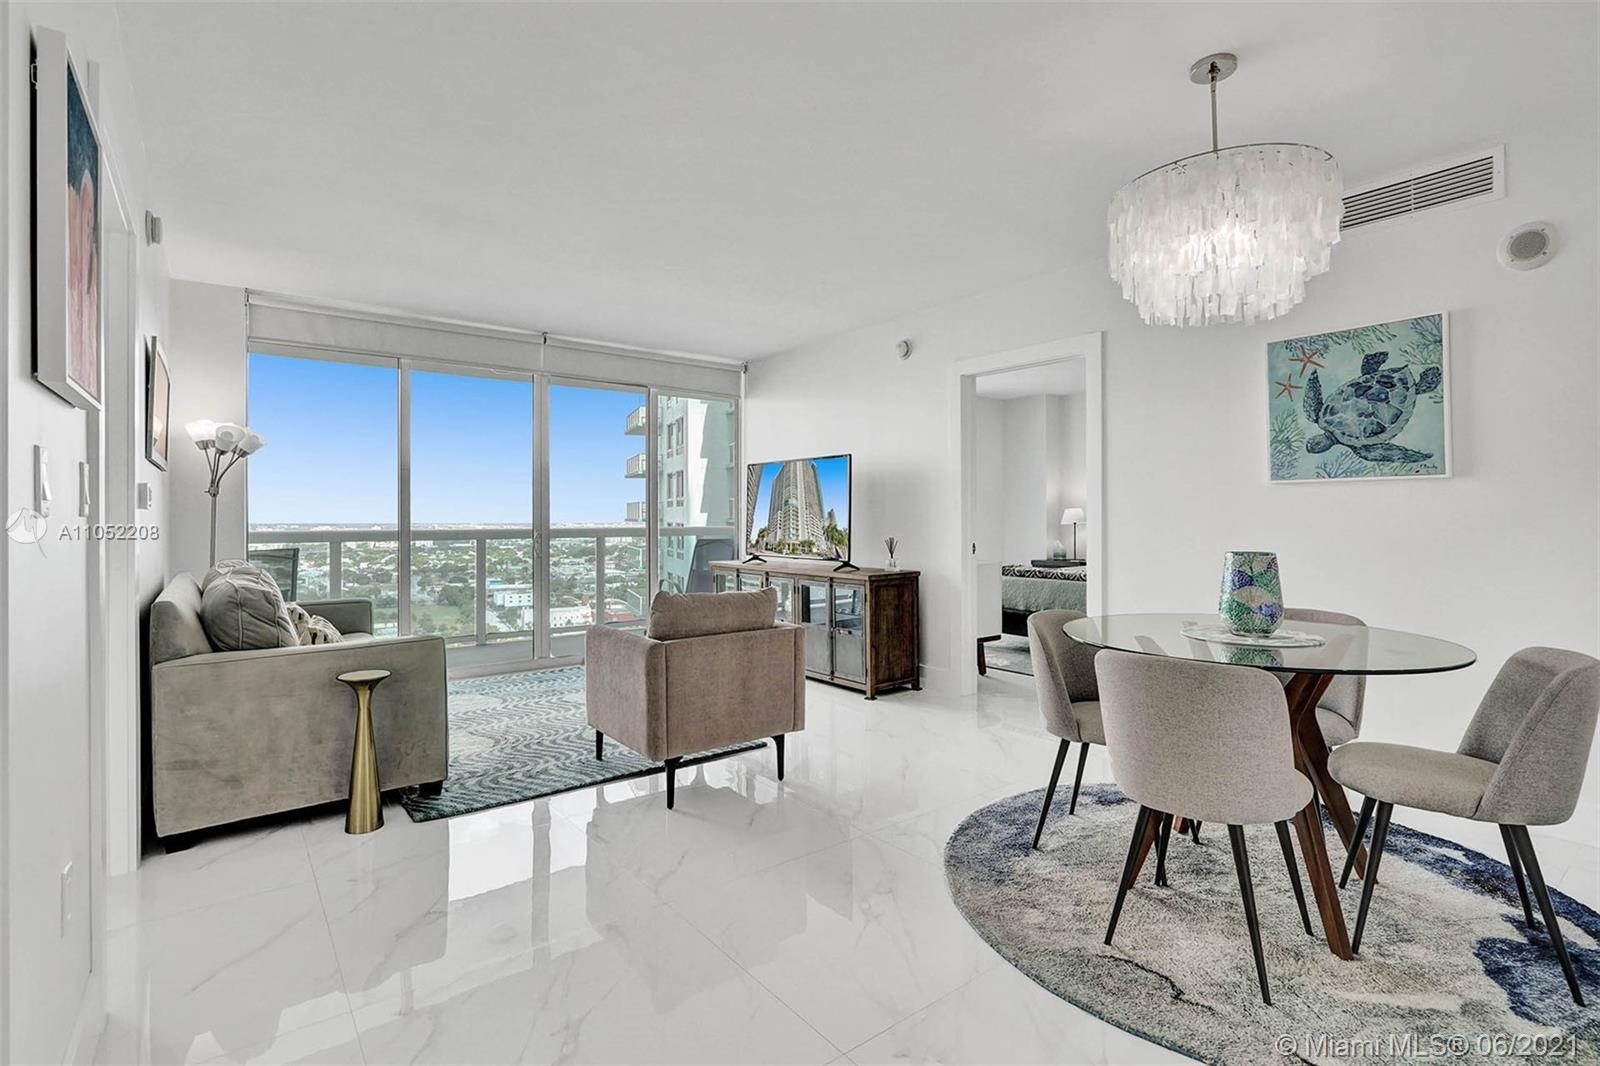 Substantially remodeled luxurious unit on the 28th floor  at the 1800 Club Condo  in the heart of Ed